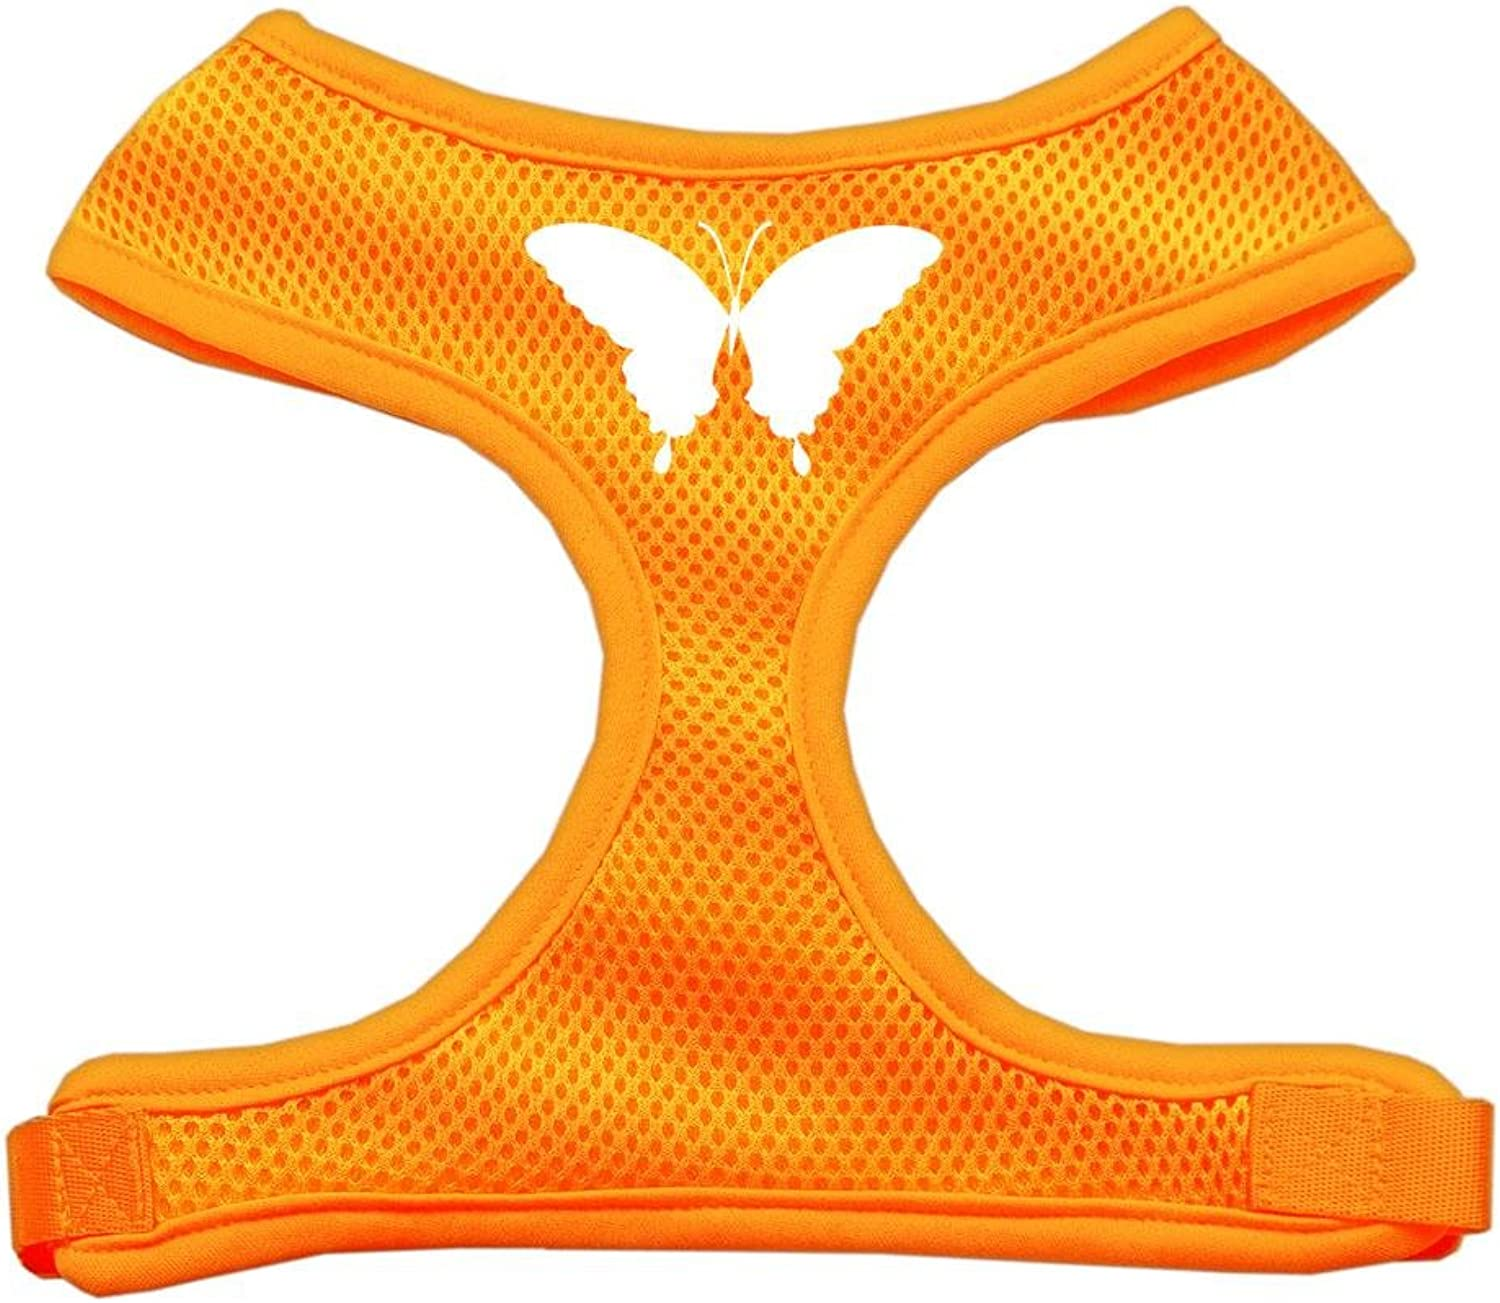 Mirage Pet Products Butterfly Design Soft Mesh Dog Harnesses, XLarge, orange